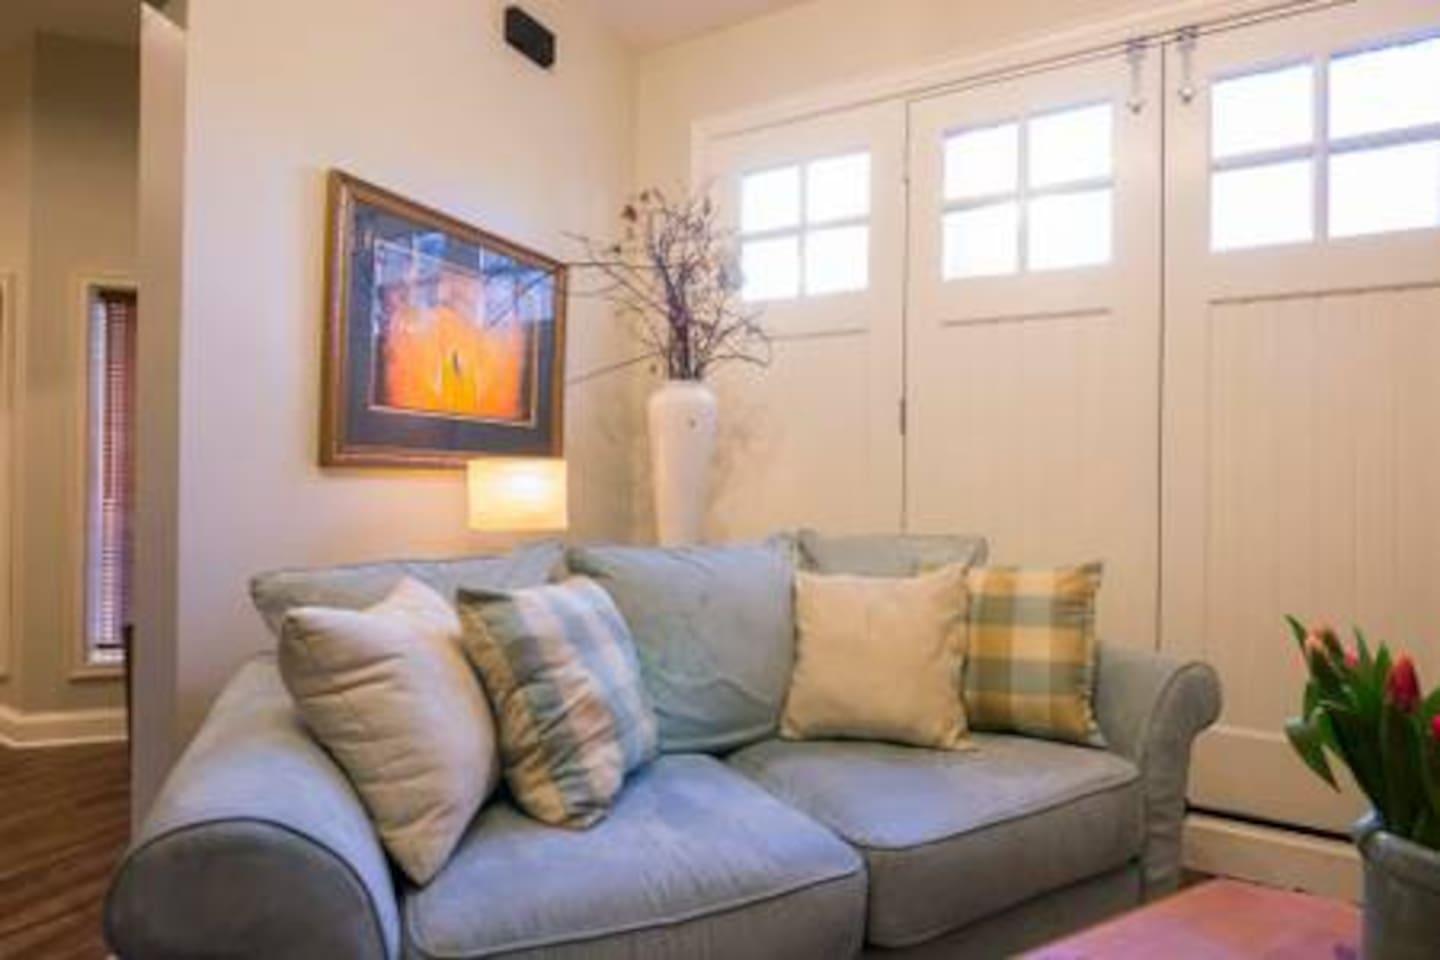 Carriage house 2 BD apt, parking